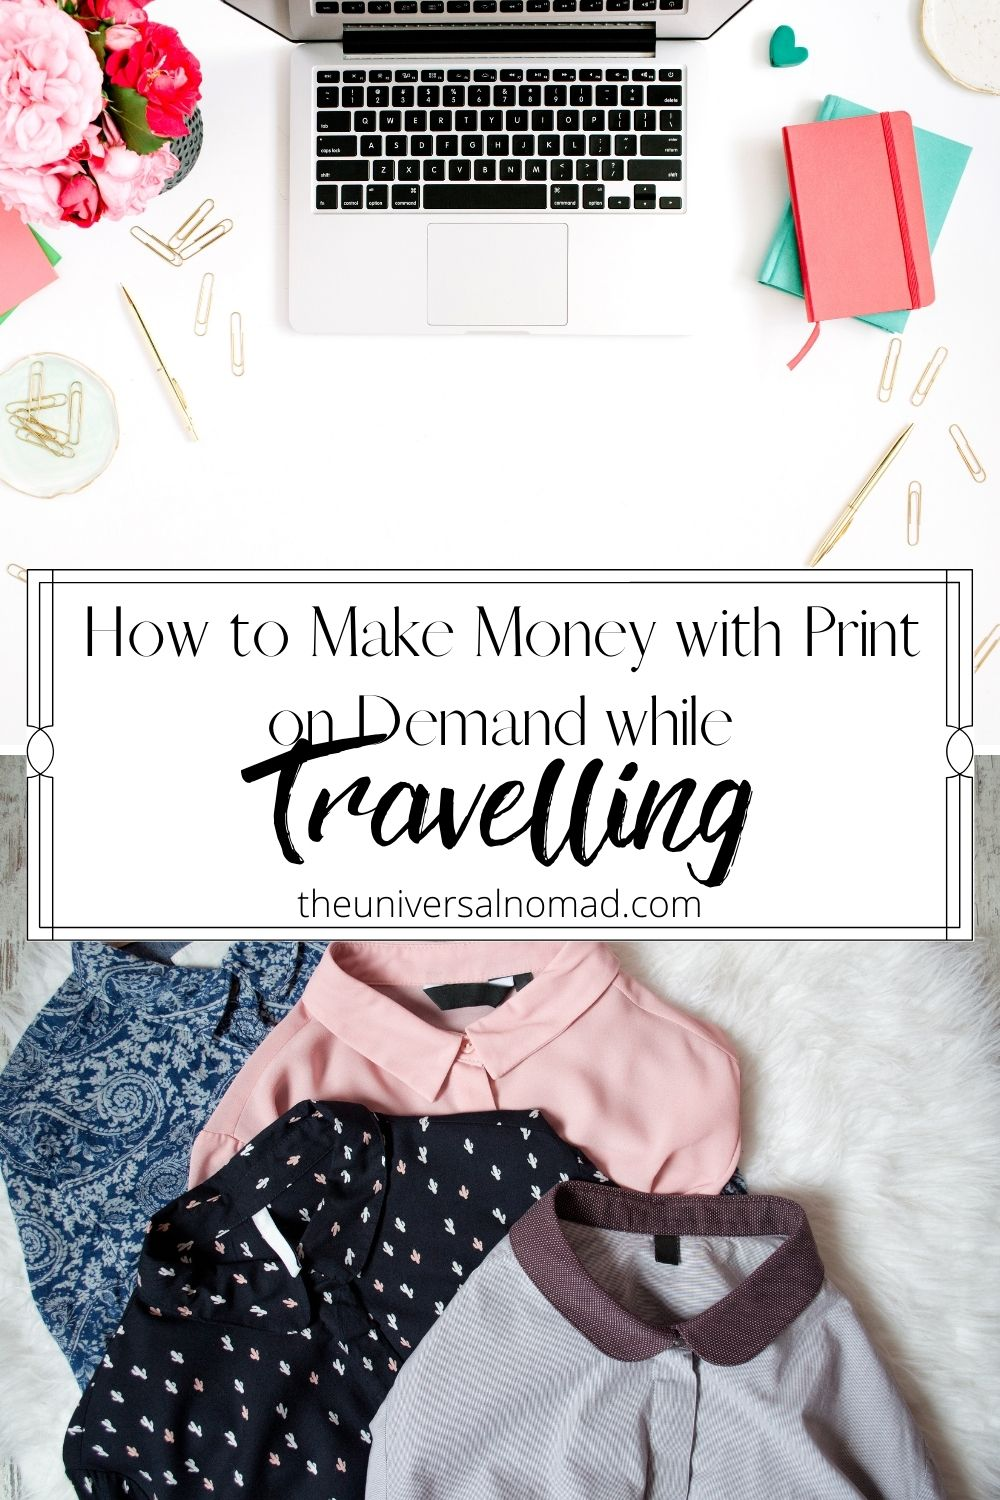 How to make money with print on demand